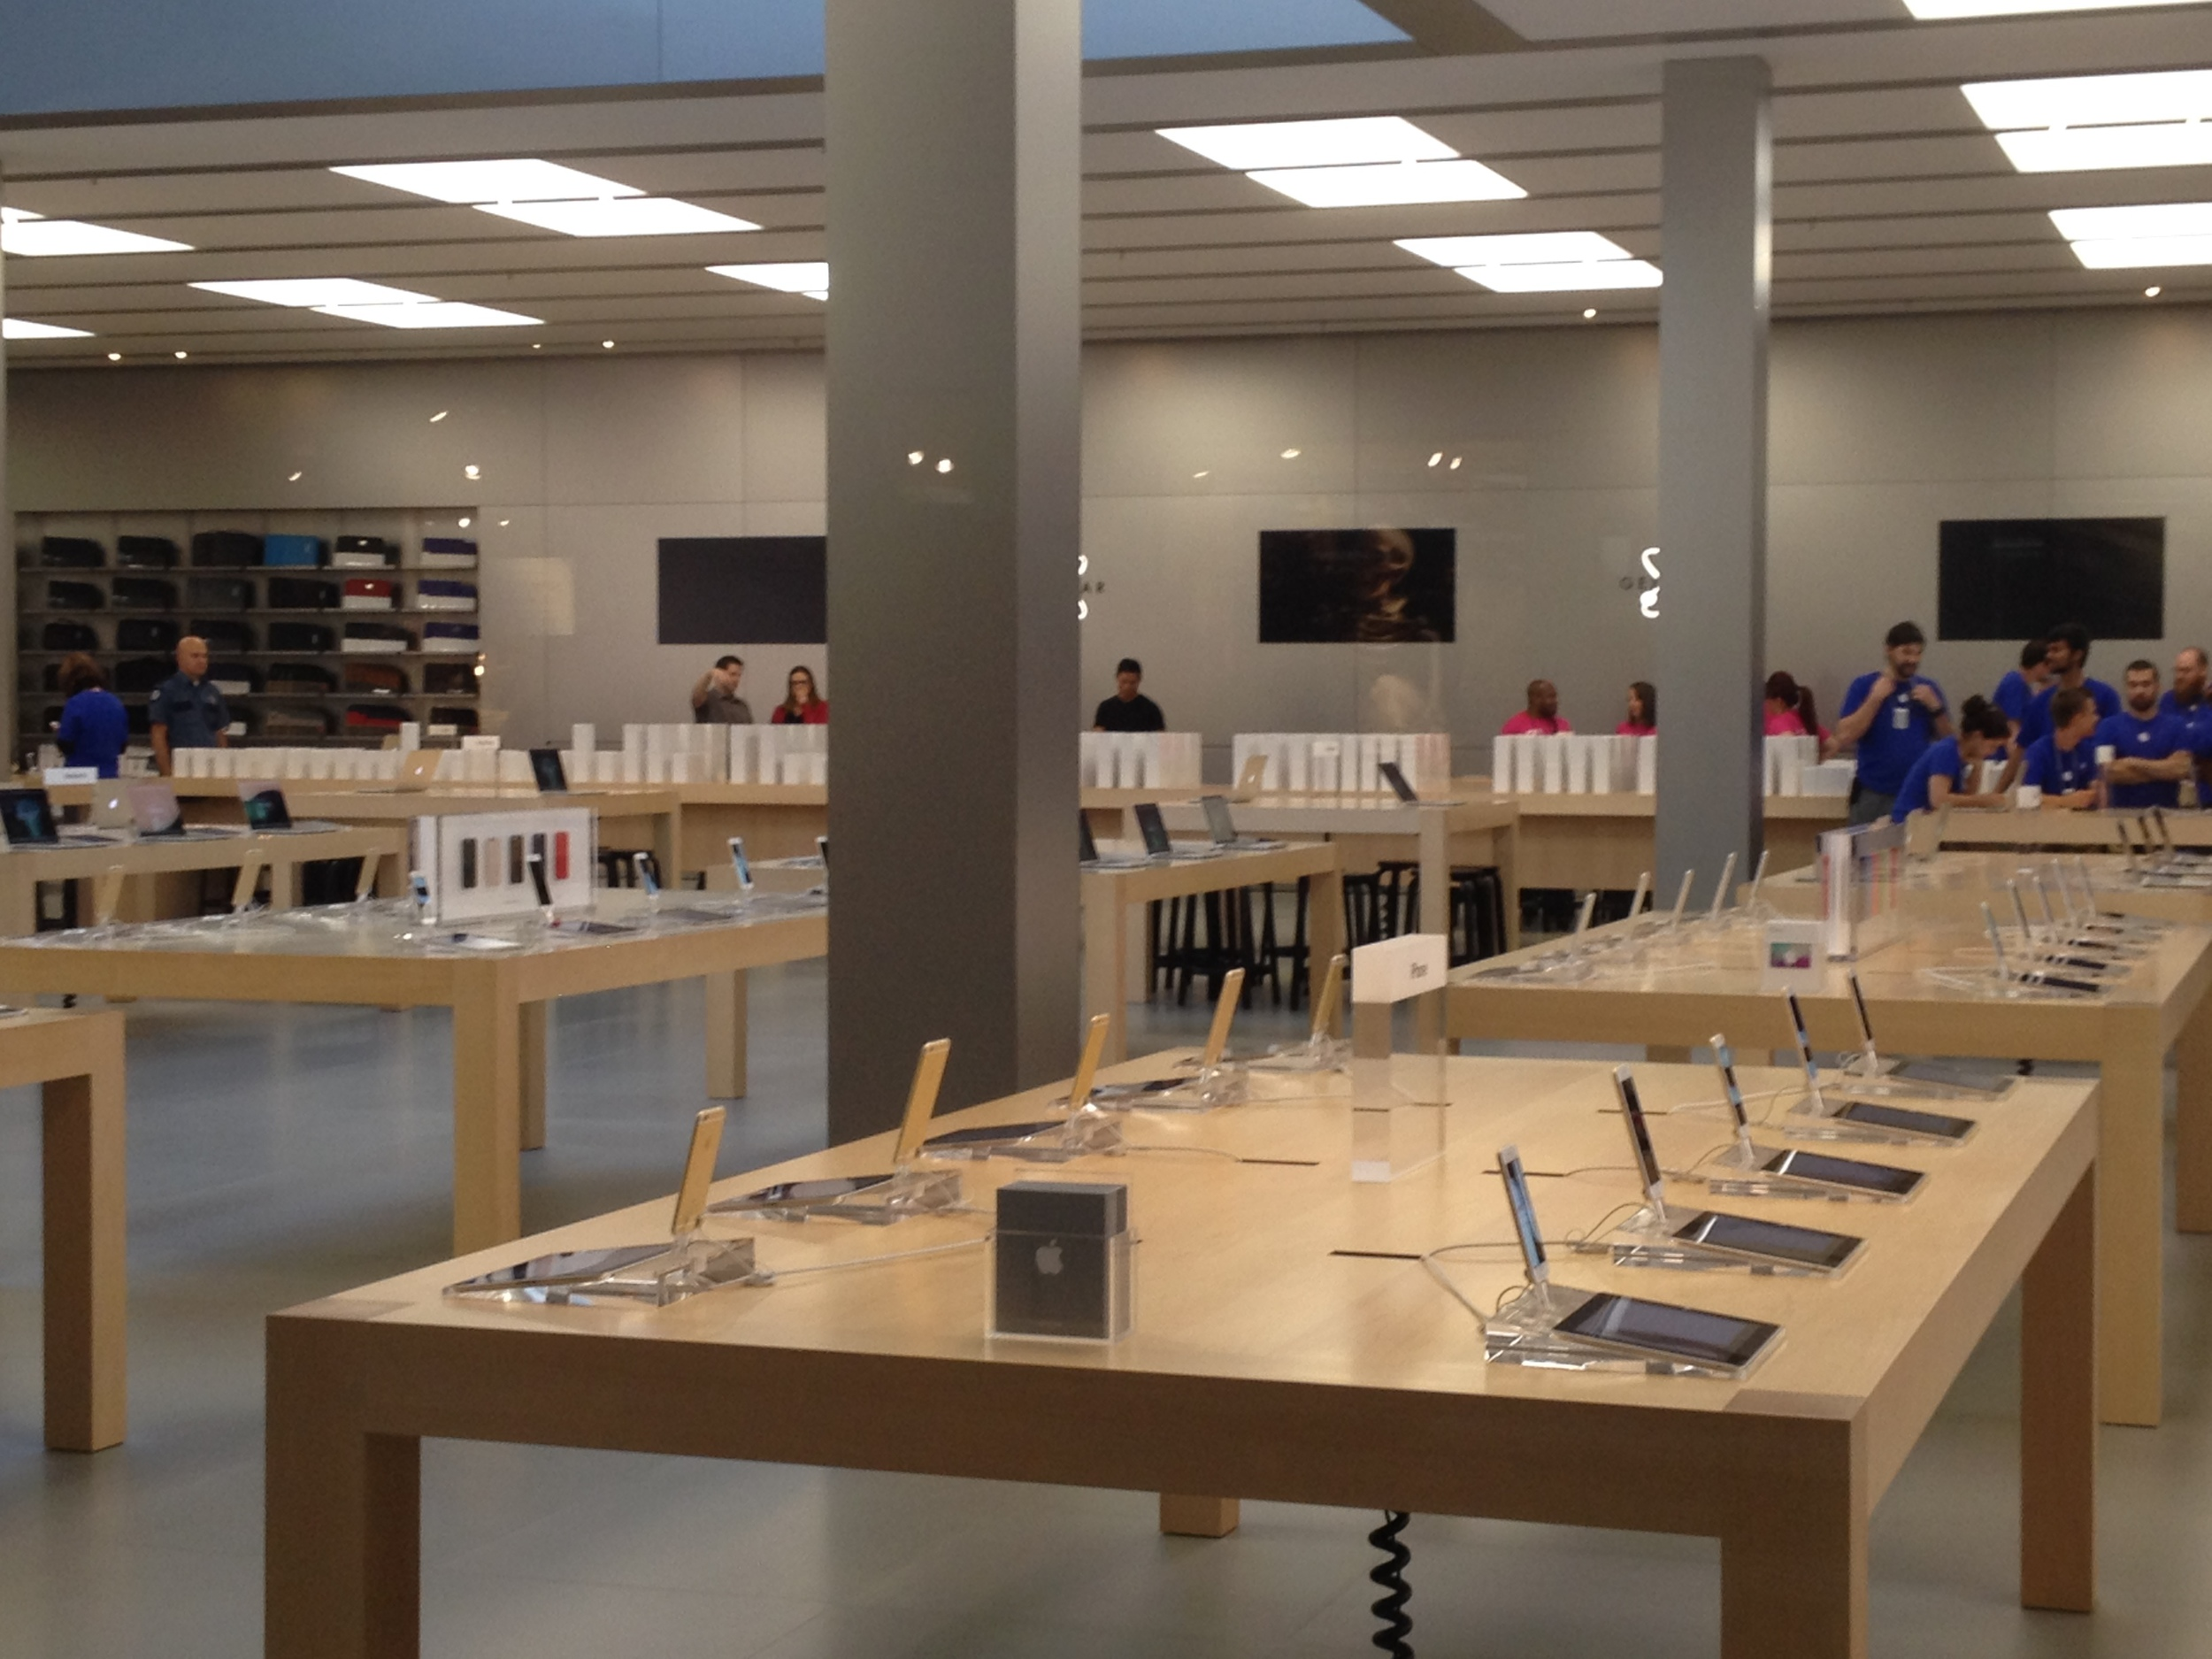 Being one of the largest Apple Stores in the Pacific Northwest (if not the largest), the Bellevue Store location was well-stocked with iPhone 6s for walk-in customers. Even with hundreds in line, those at the end were reassured by employees that they would get an iPhone.